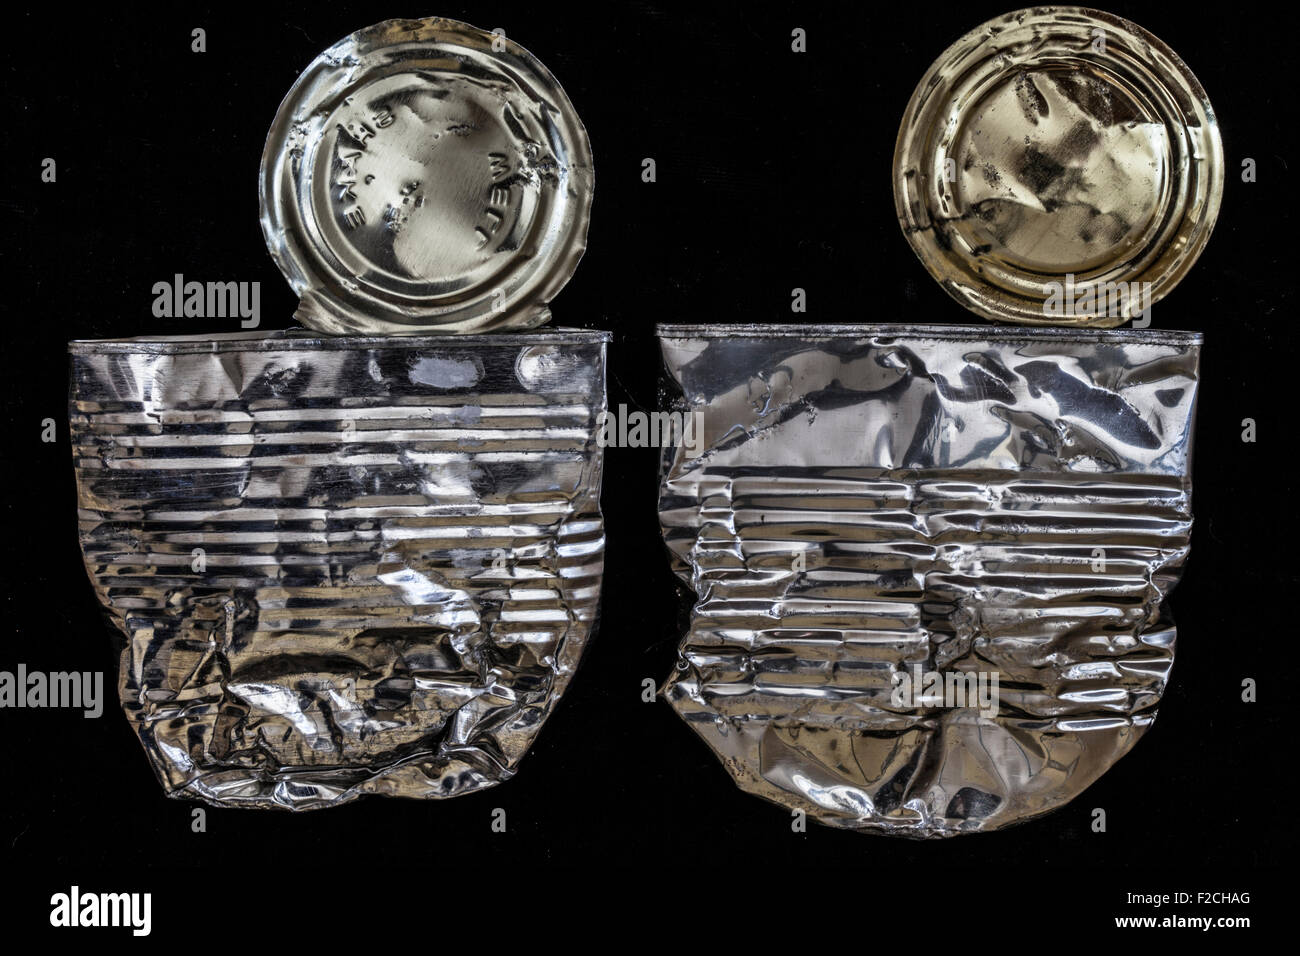 two flattened metal cans on black - Stock Image